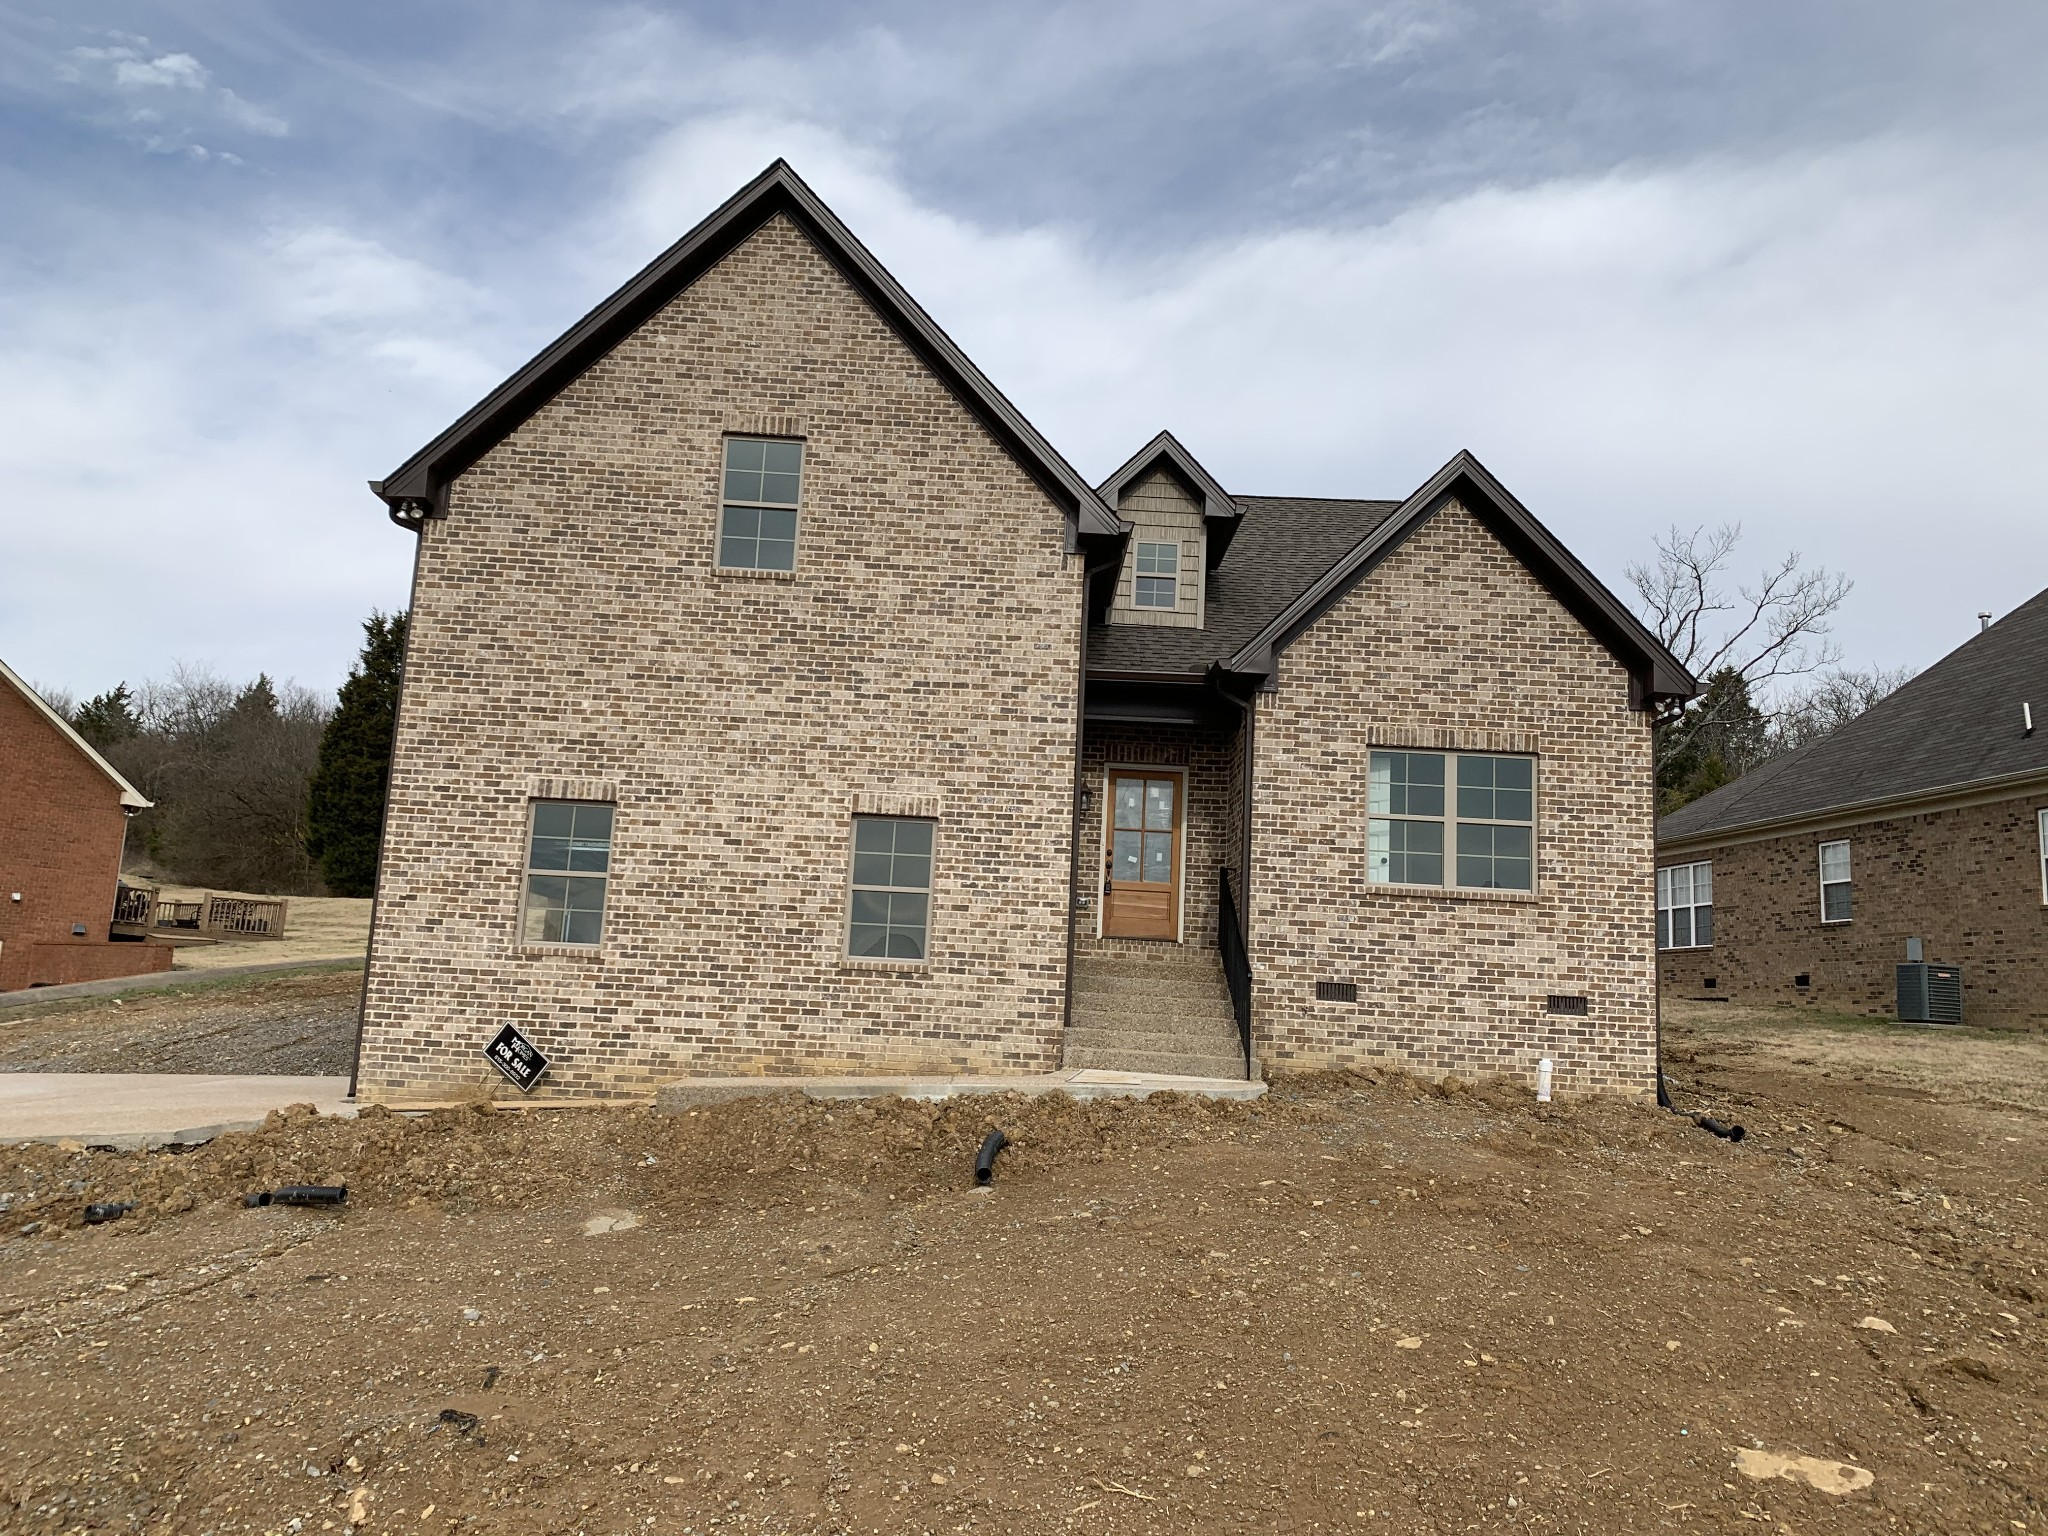 377 Solitude Cir, Goodlettsville, TN 37072 - Goodlettsville, TN real estate listing